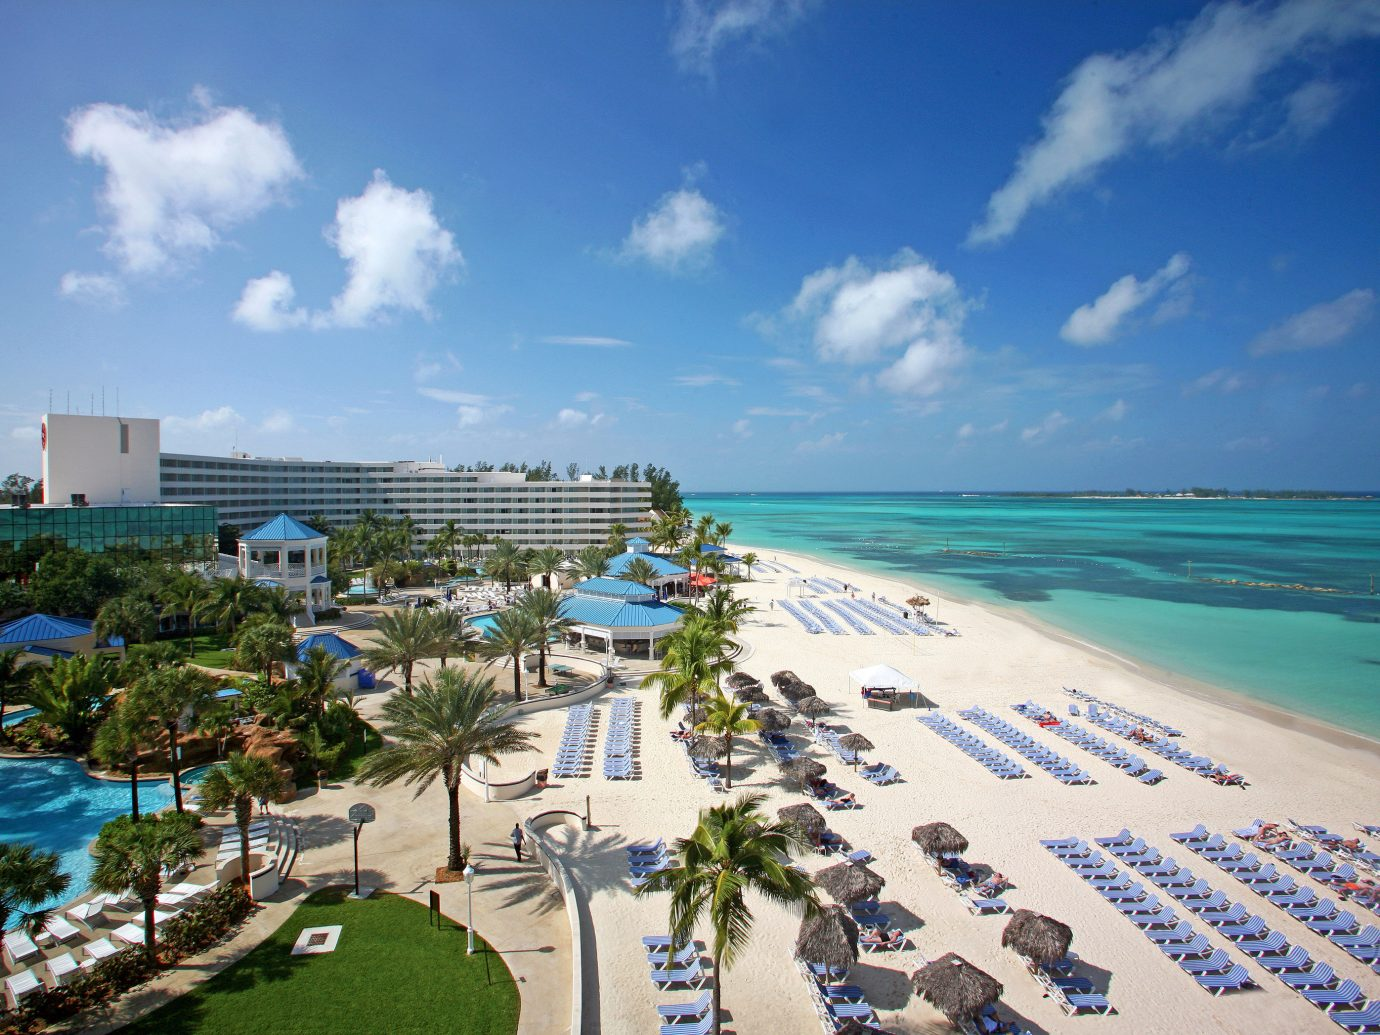 Hotels sky outdoor Beach Nature leisure caribbean vacation Resort Sea Ocean Coast bay cape shore day